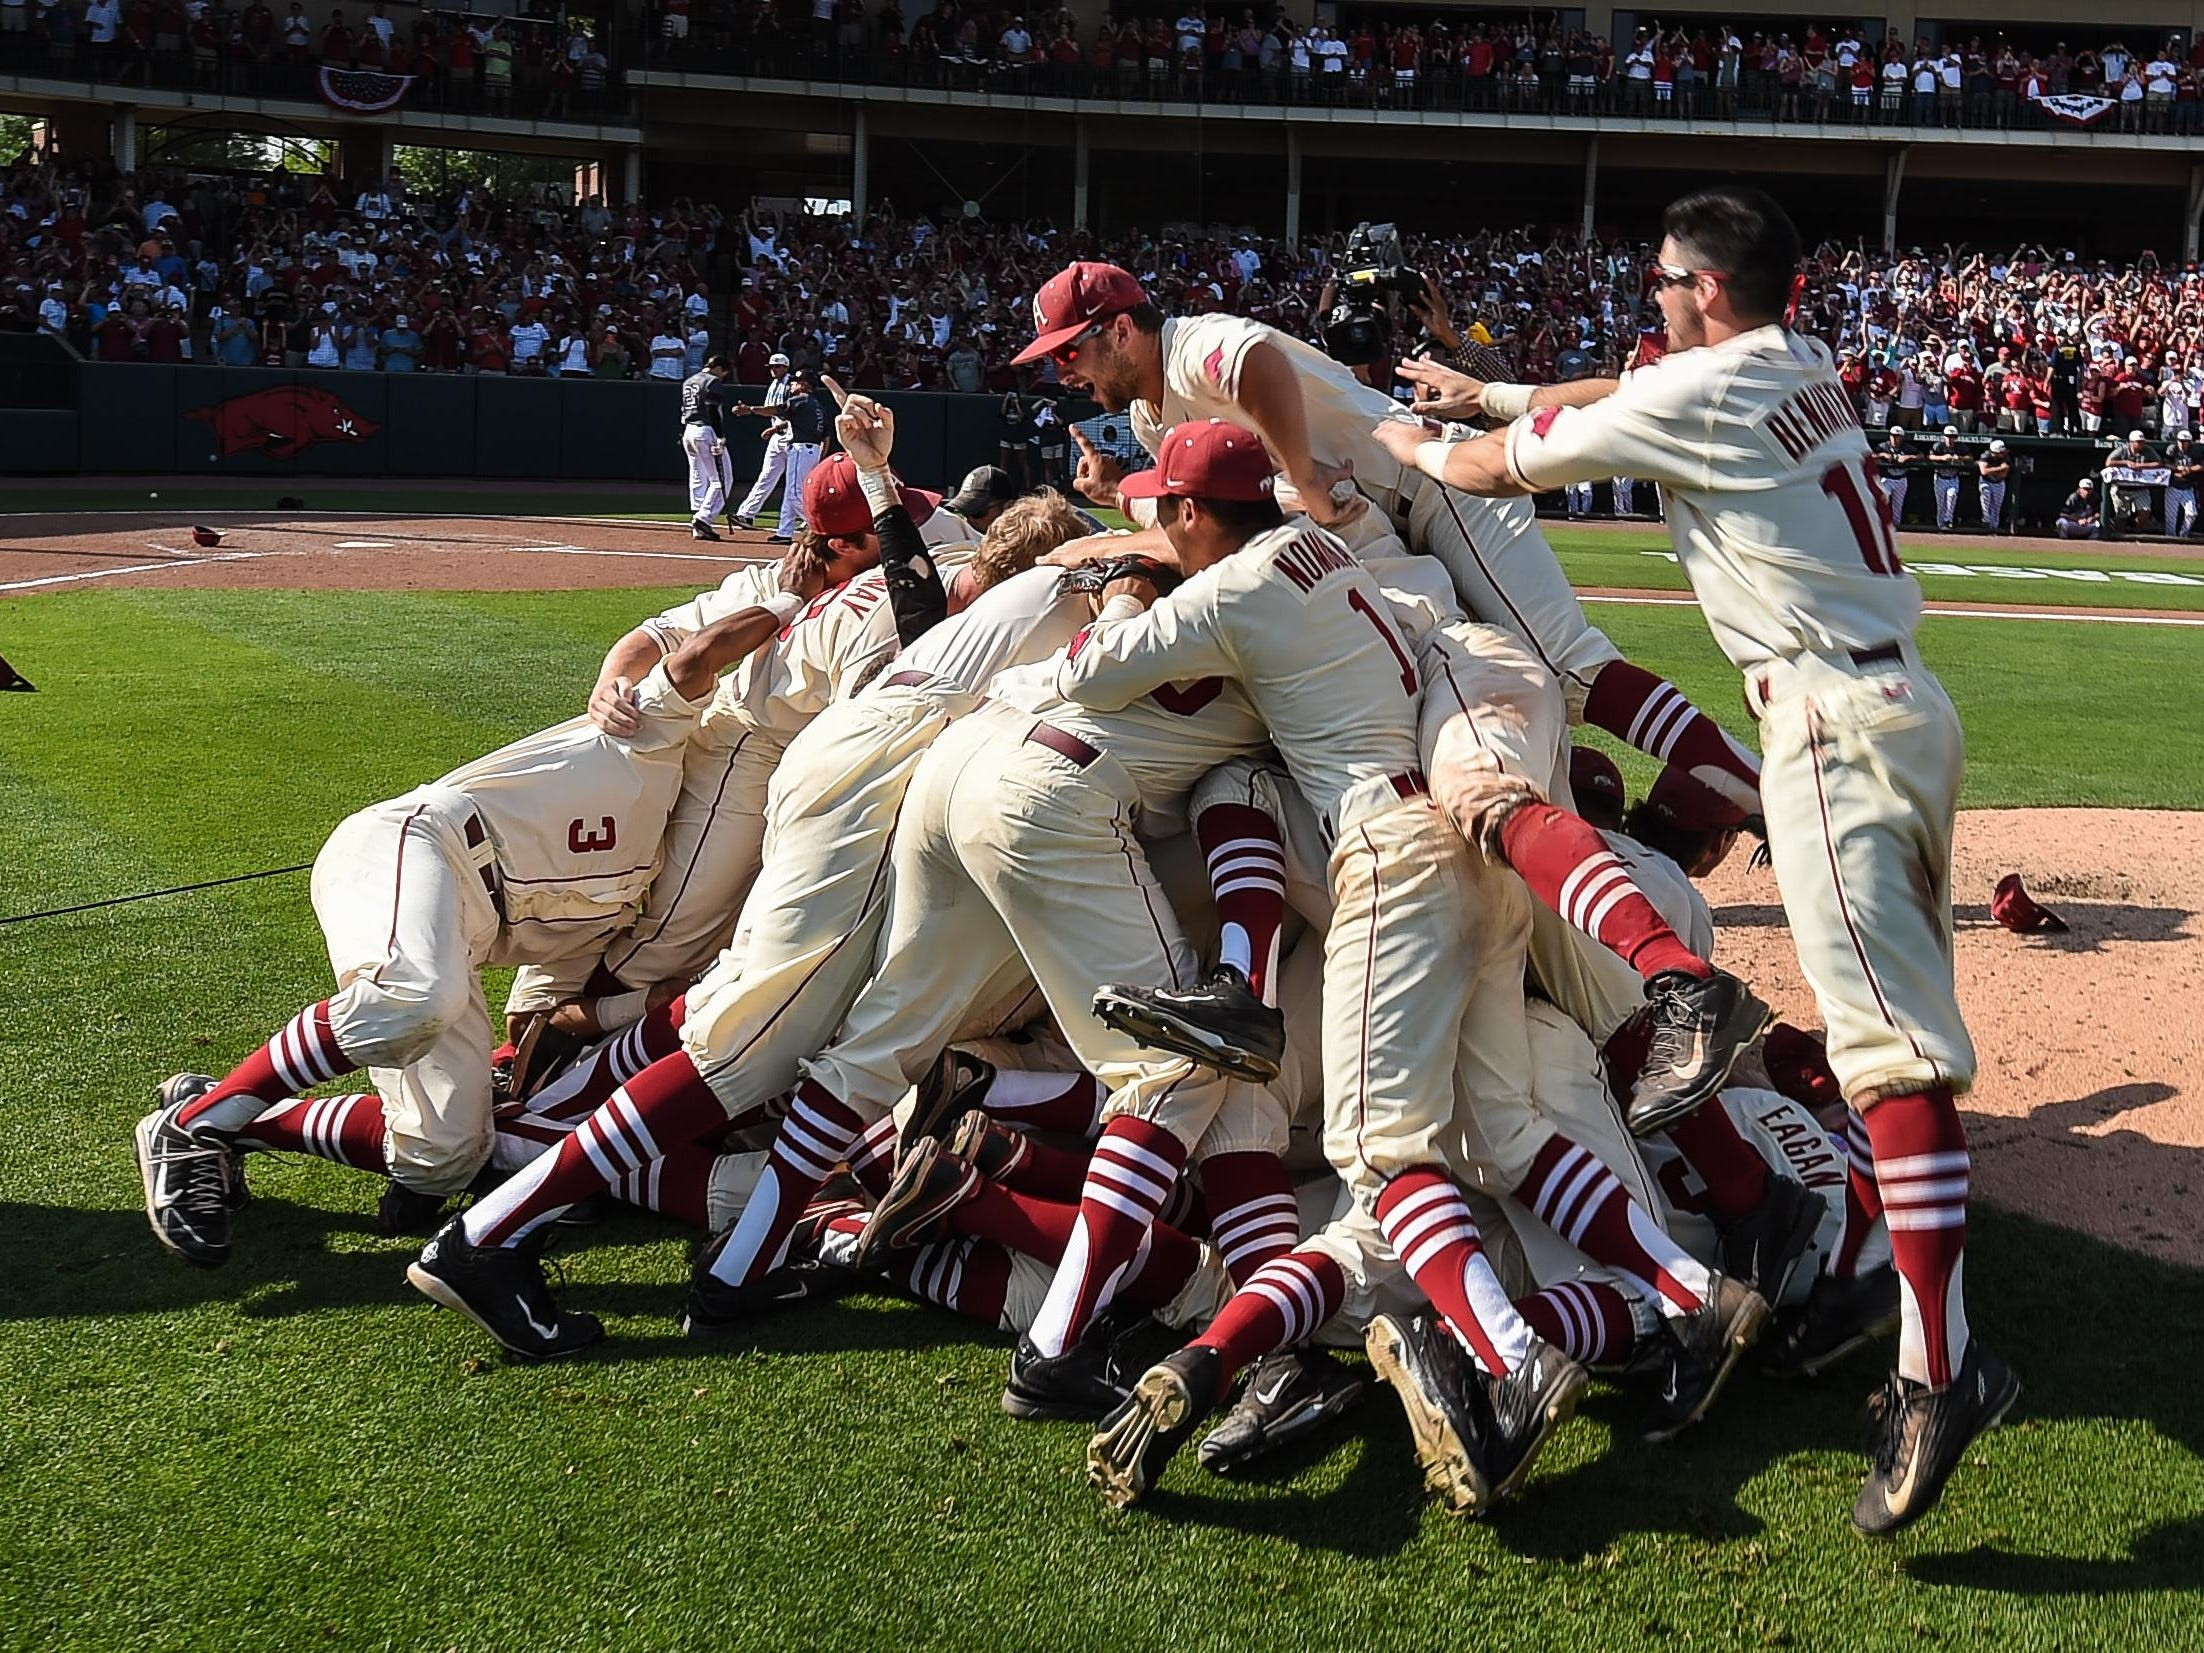 Post game celebration on Sunday, during the Fayetteville Super Regional game 3 between Arkansas and Missouri State at Baum Stadium. Arkansas won the game 3-2.